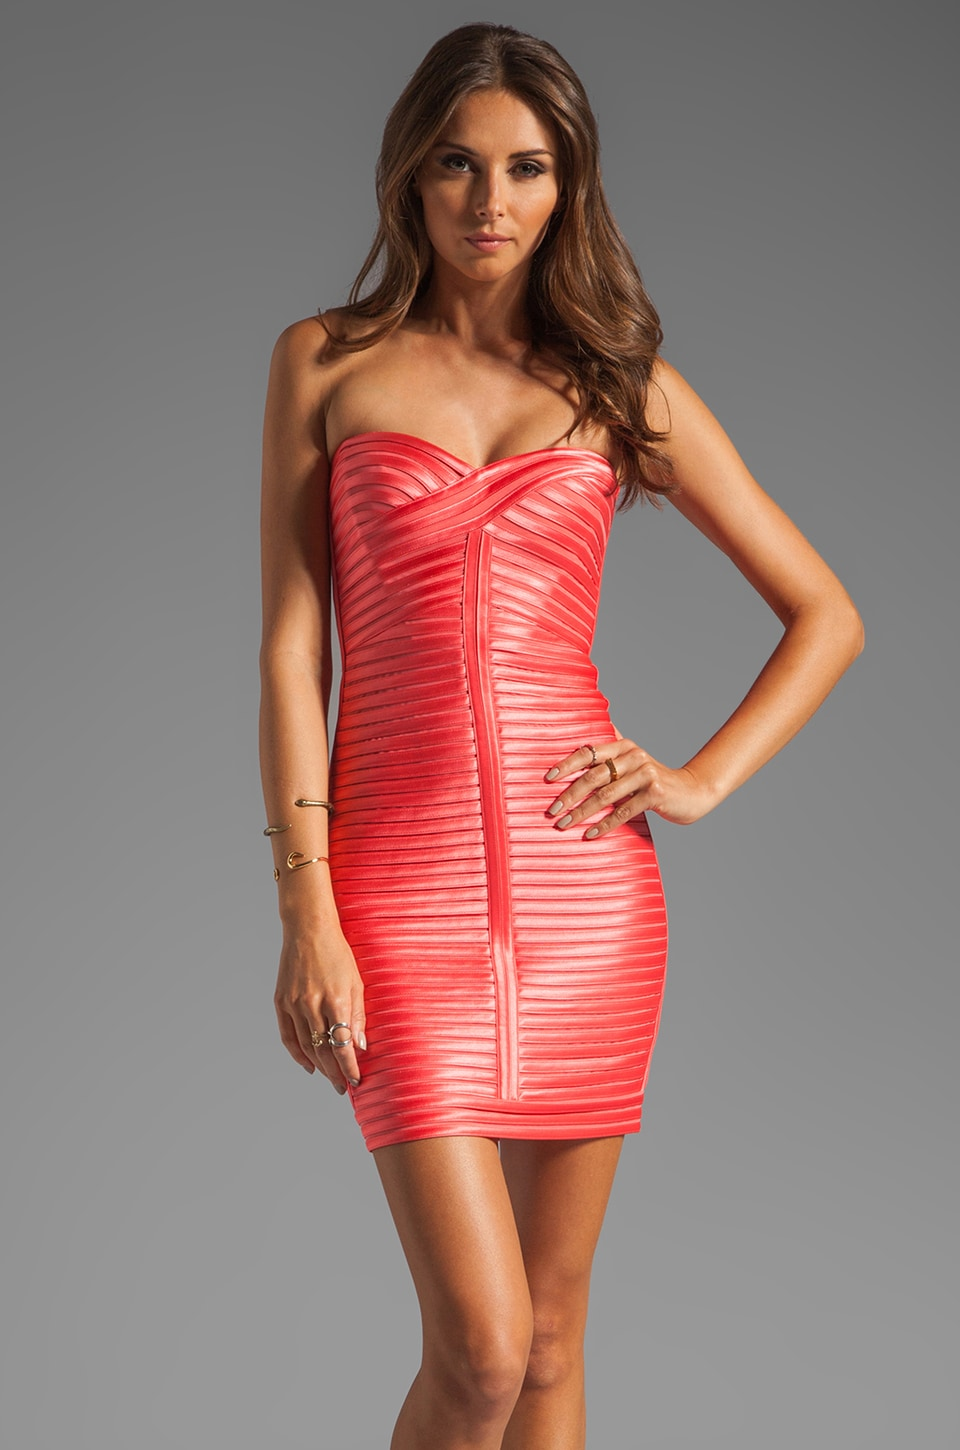 BCBGMAXAZRIA Mini Cocktail Dress in Coral Reef